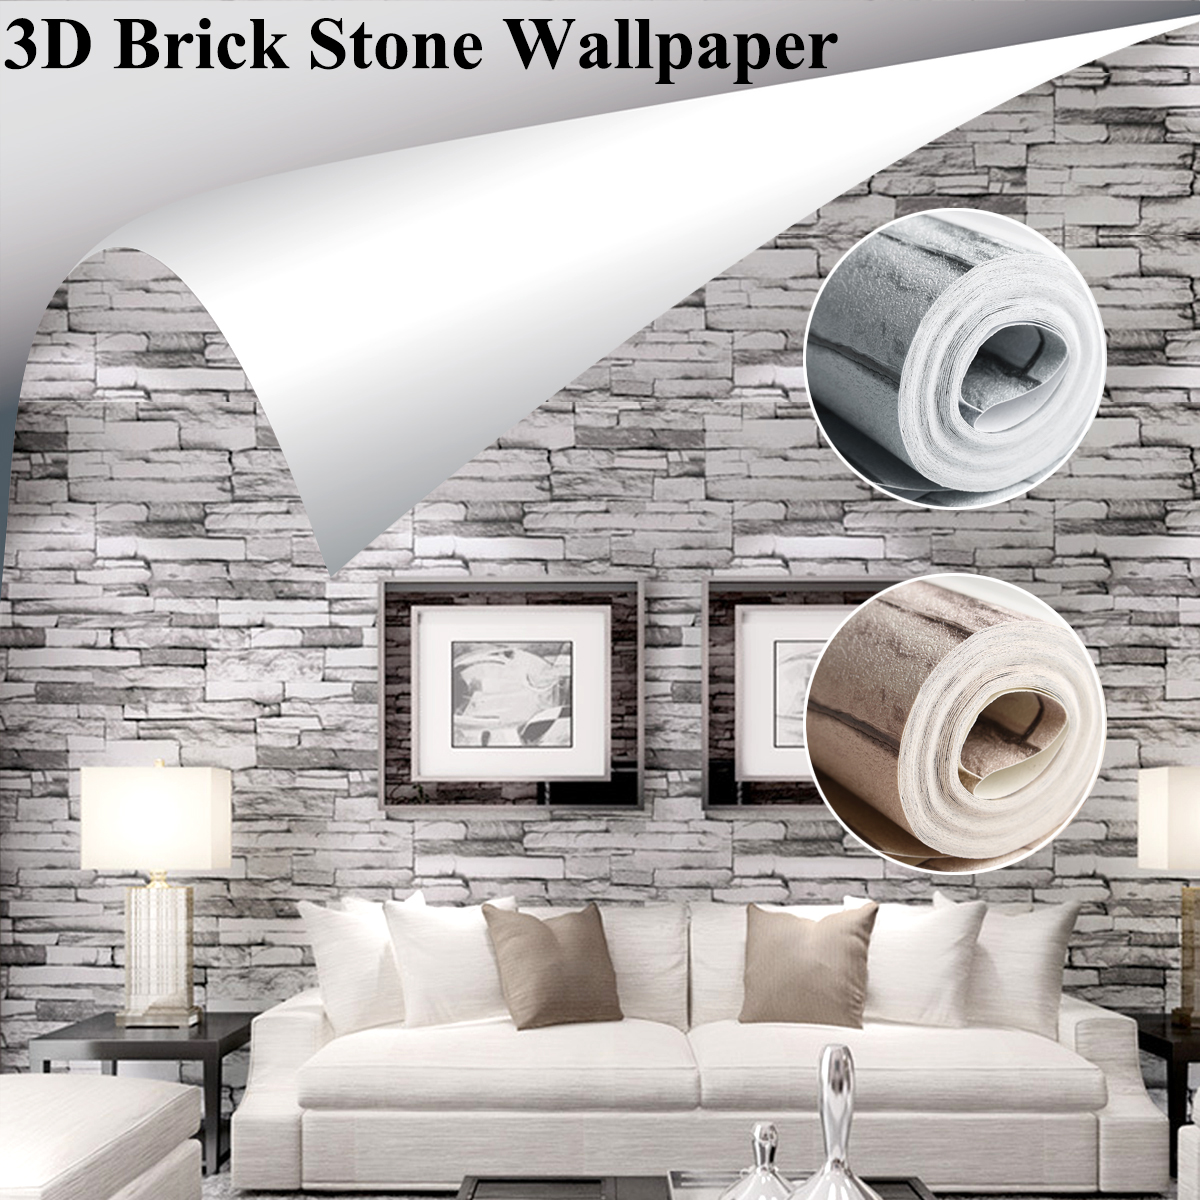 Modern 3D Brick Stone Wallpaper Vintage Brick Pattern For Living Room Wall Sticker Decor Waterproof TV Sofa Background цена